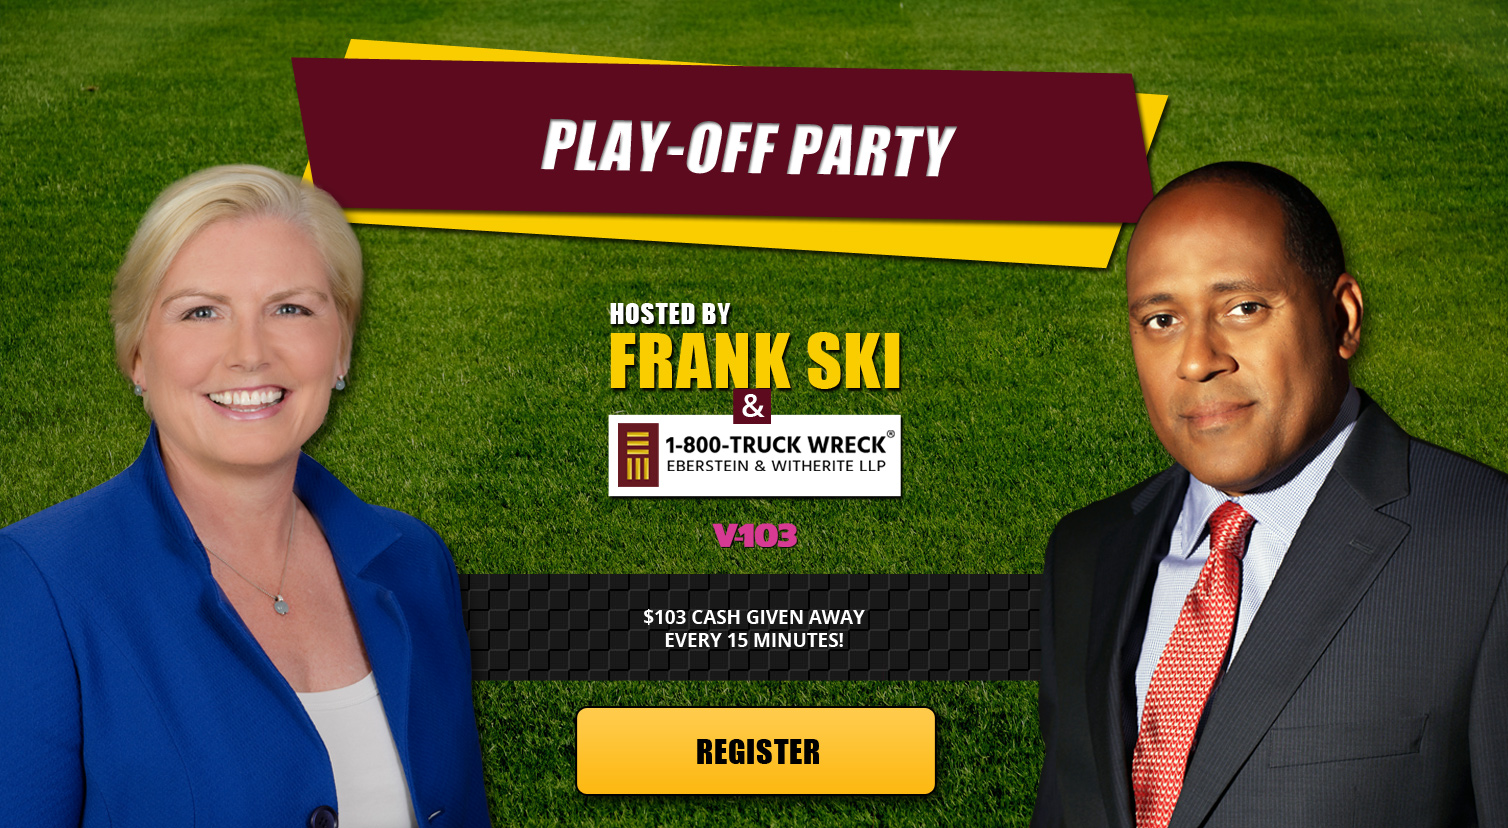 1-800-TRUCK-WRECK® of Eberstein & Witherite hosts the Falcons Play-Off Party alongside V-103